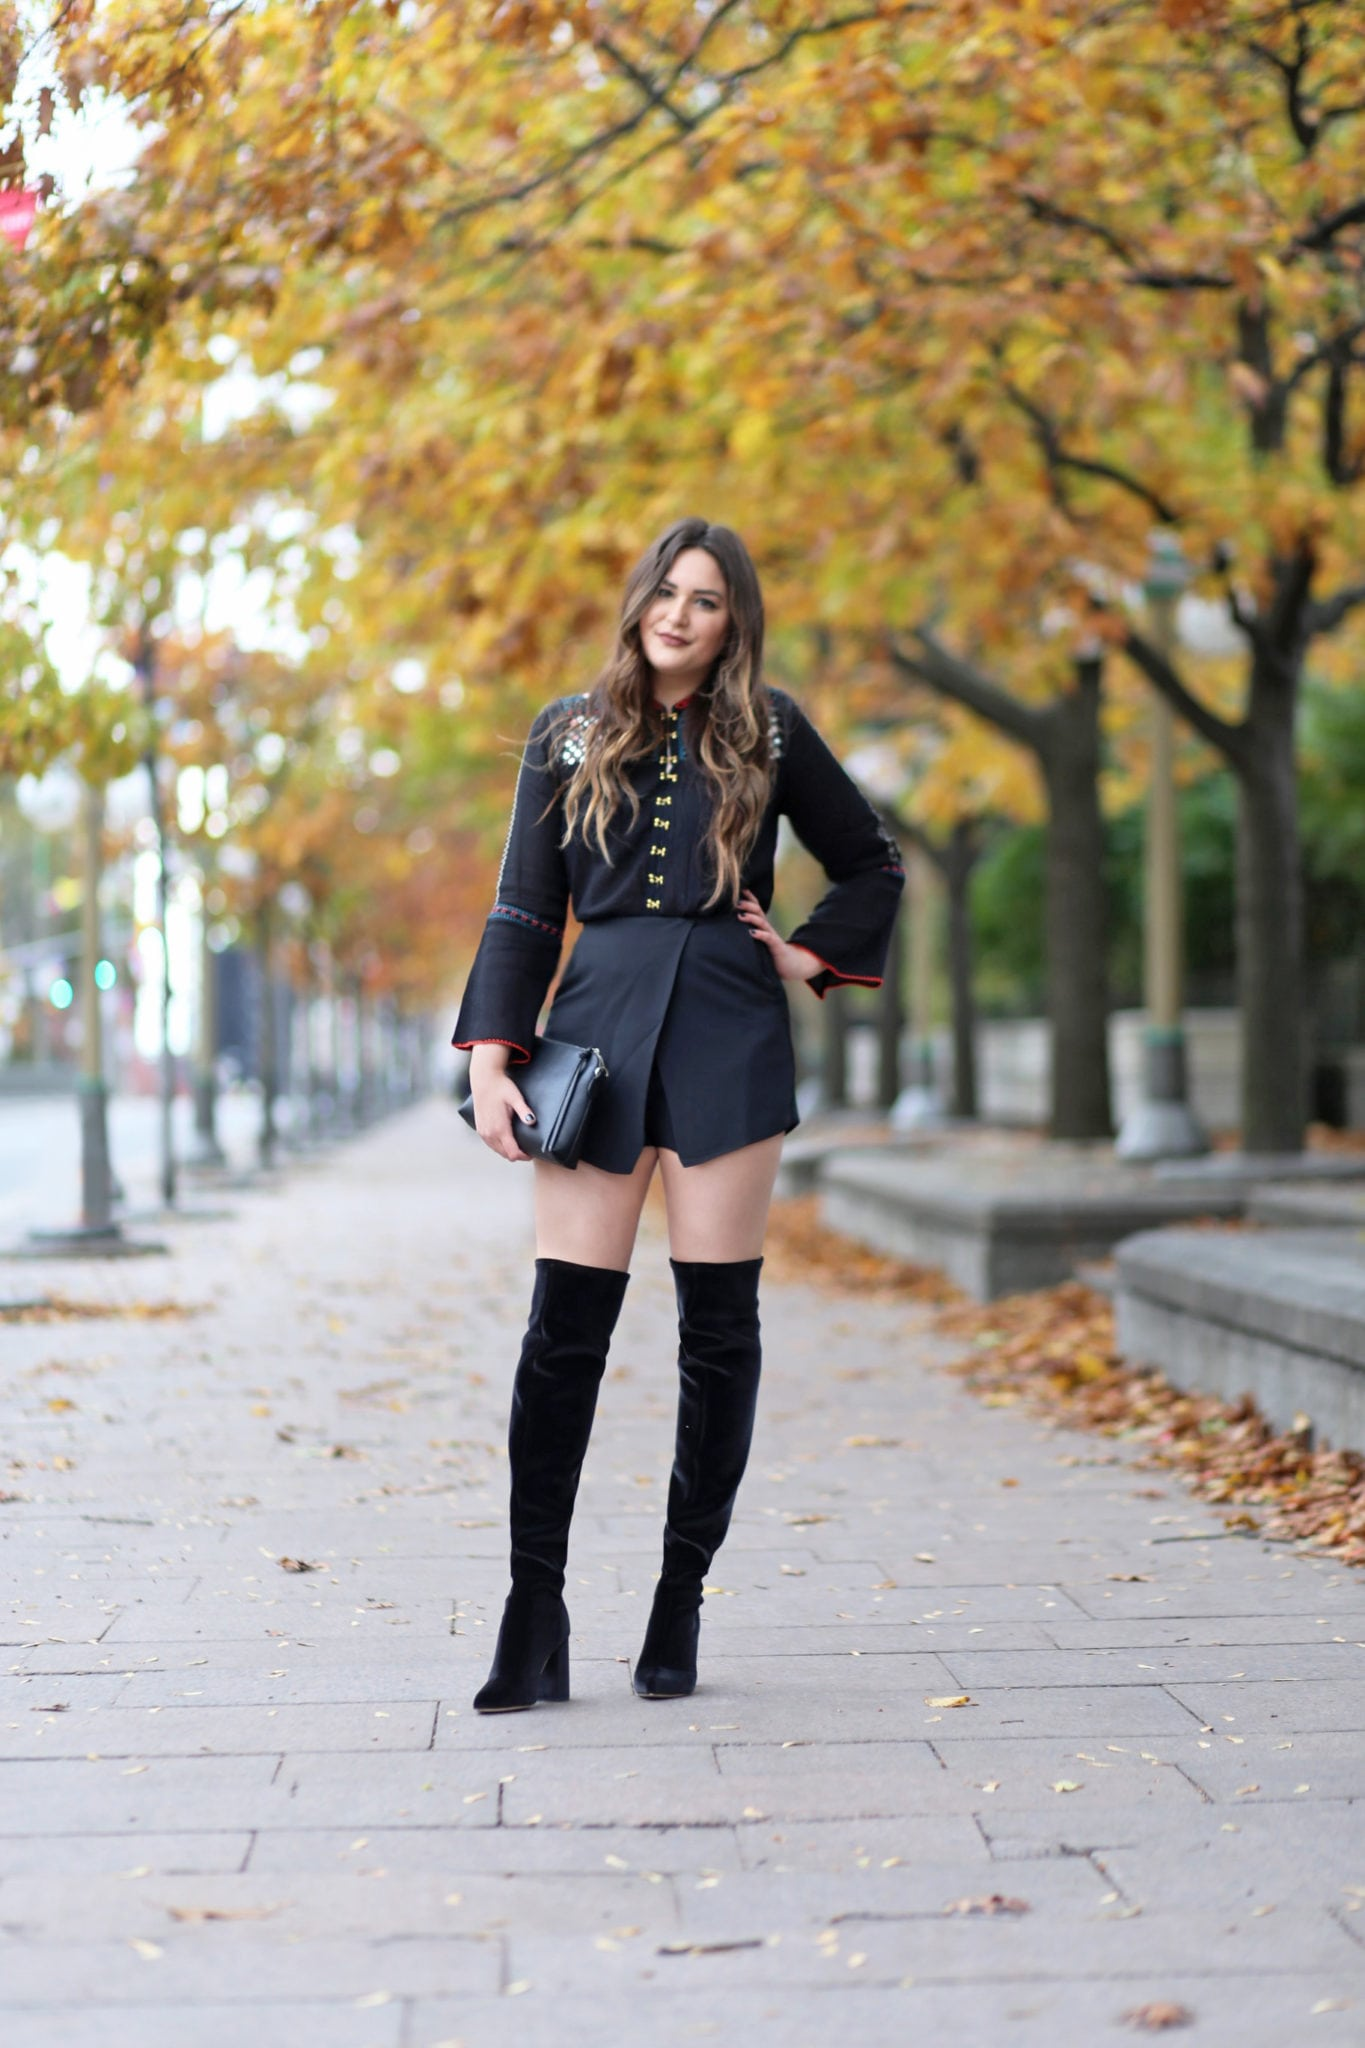 blogger Mash Elle | how to style OTK boots in warmer weather | otk boots | fall fashion | black otk boots